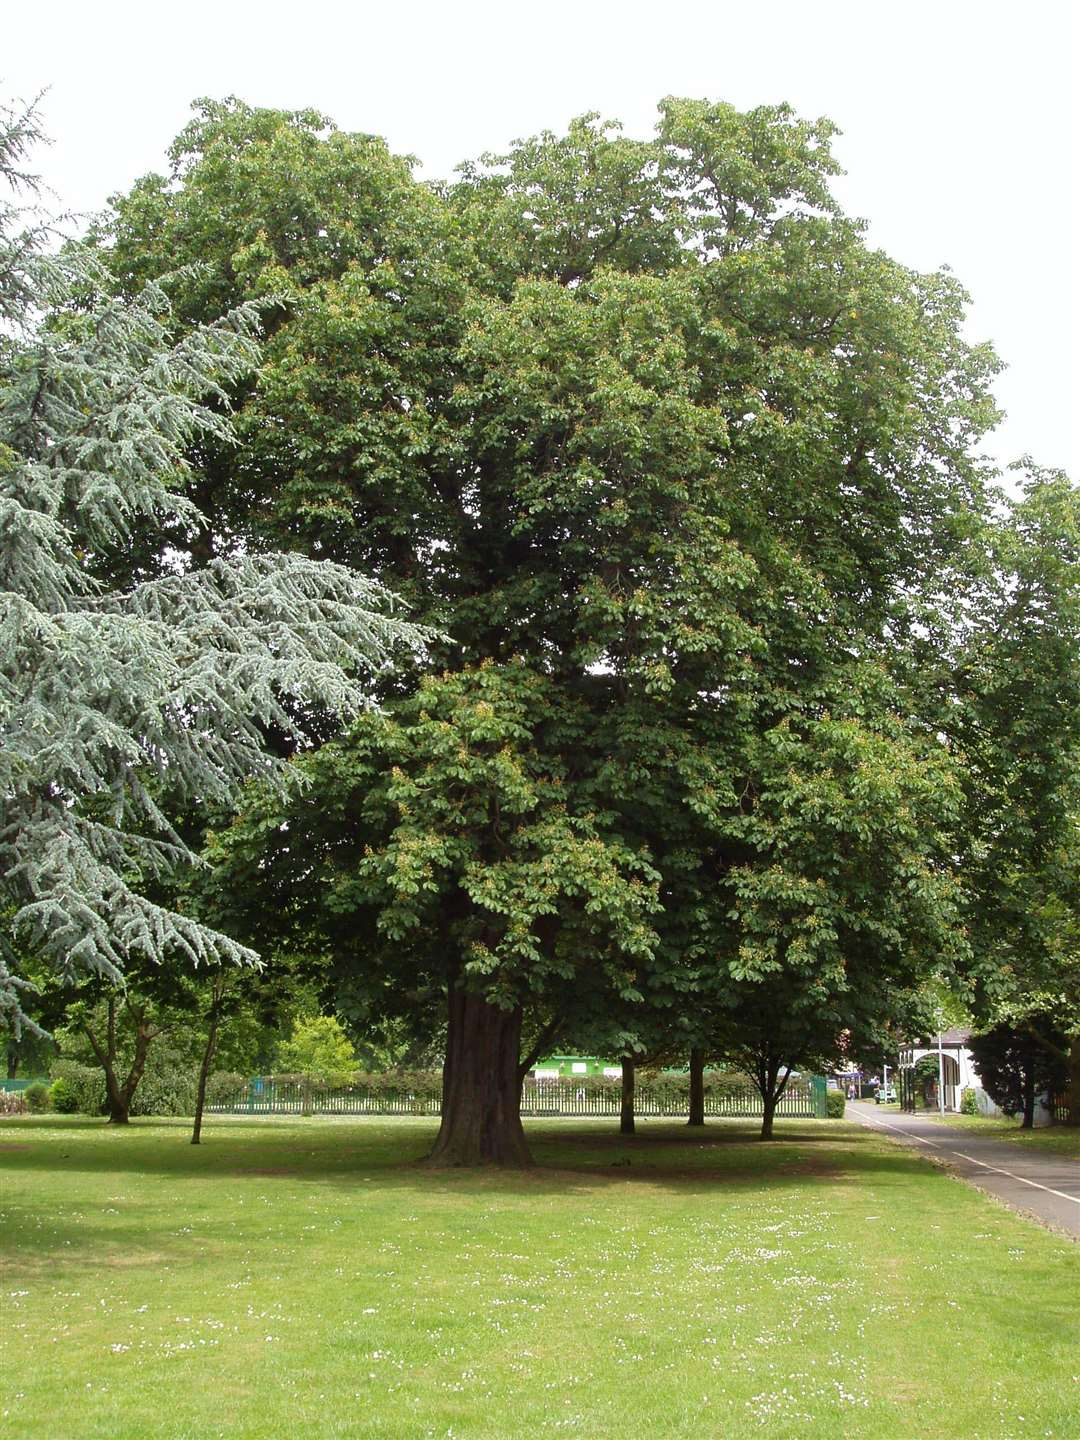 The horse chestnut tree in Wyndham Park, pictured in 2006, which had to be cut down in 2018. (6301073)